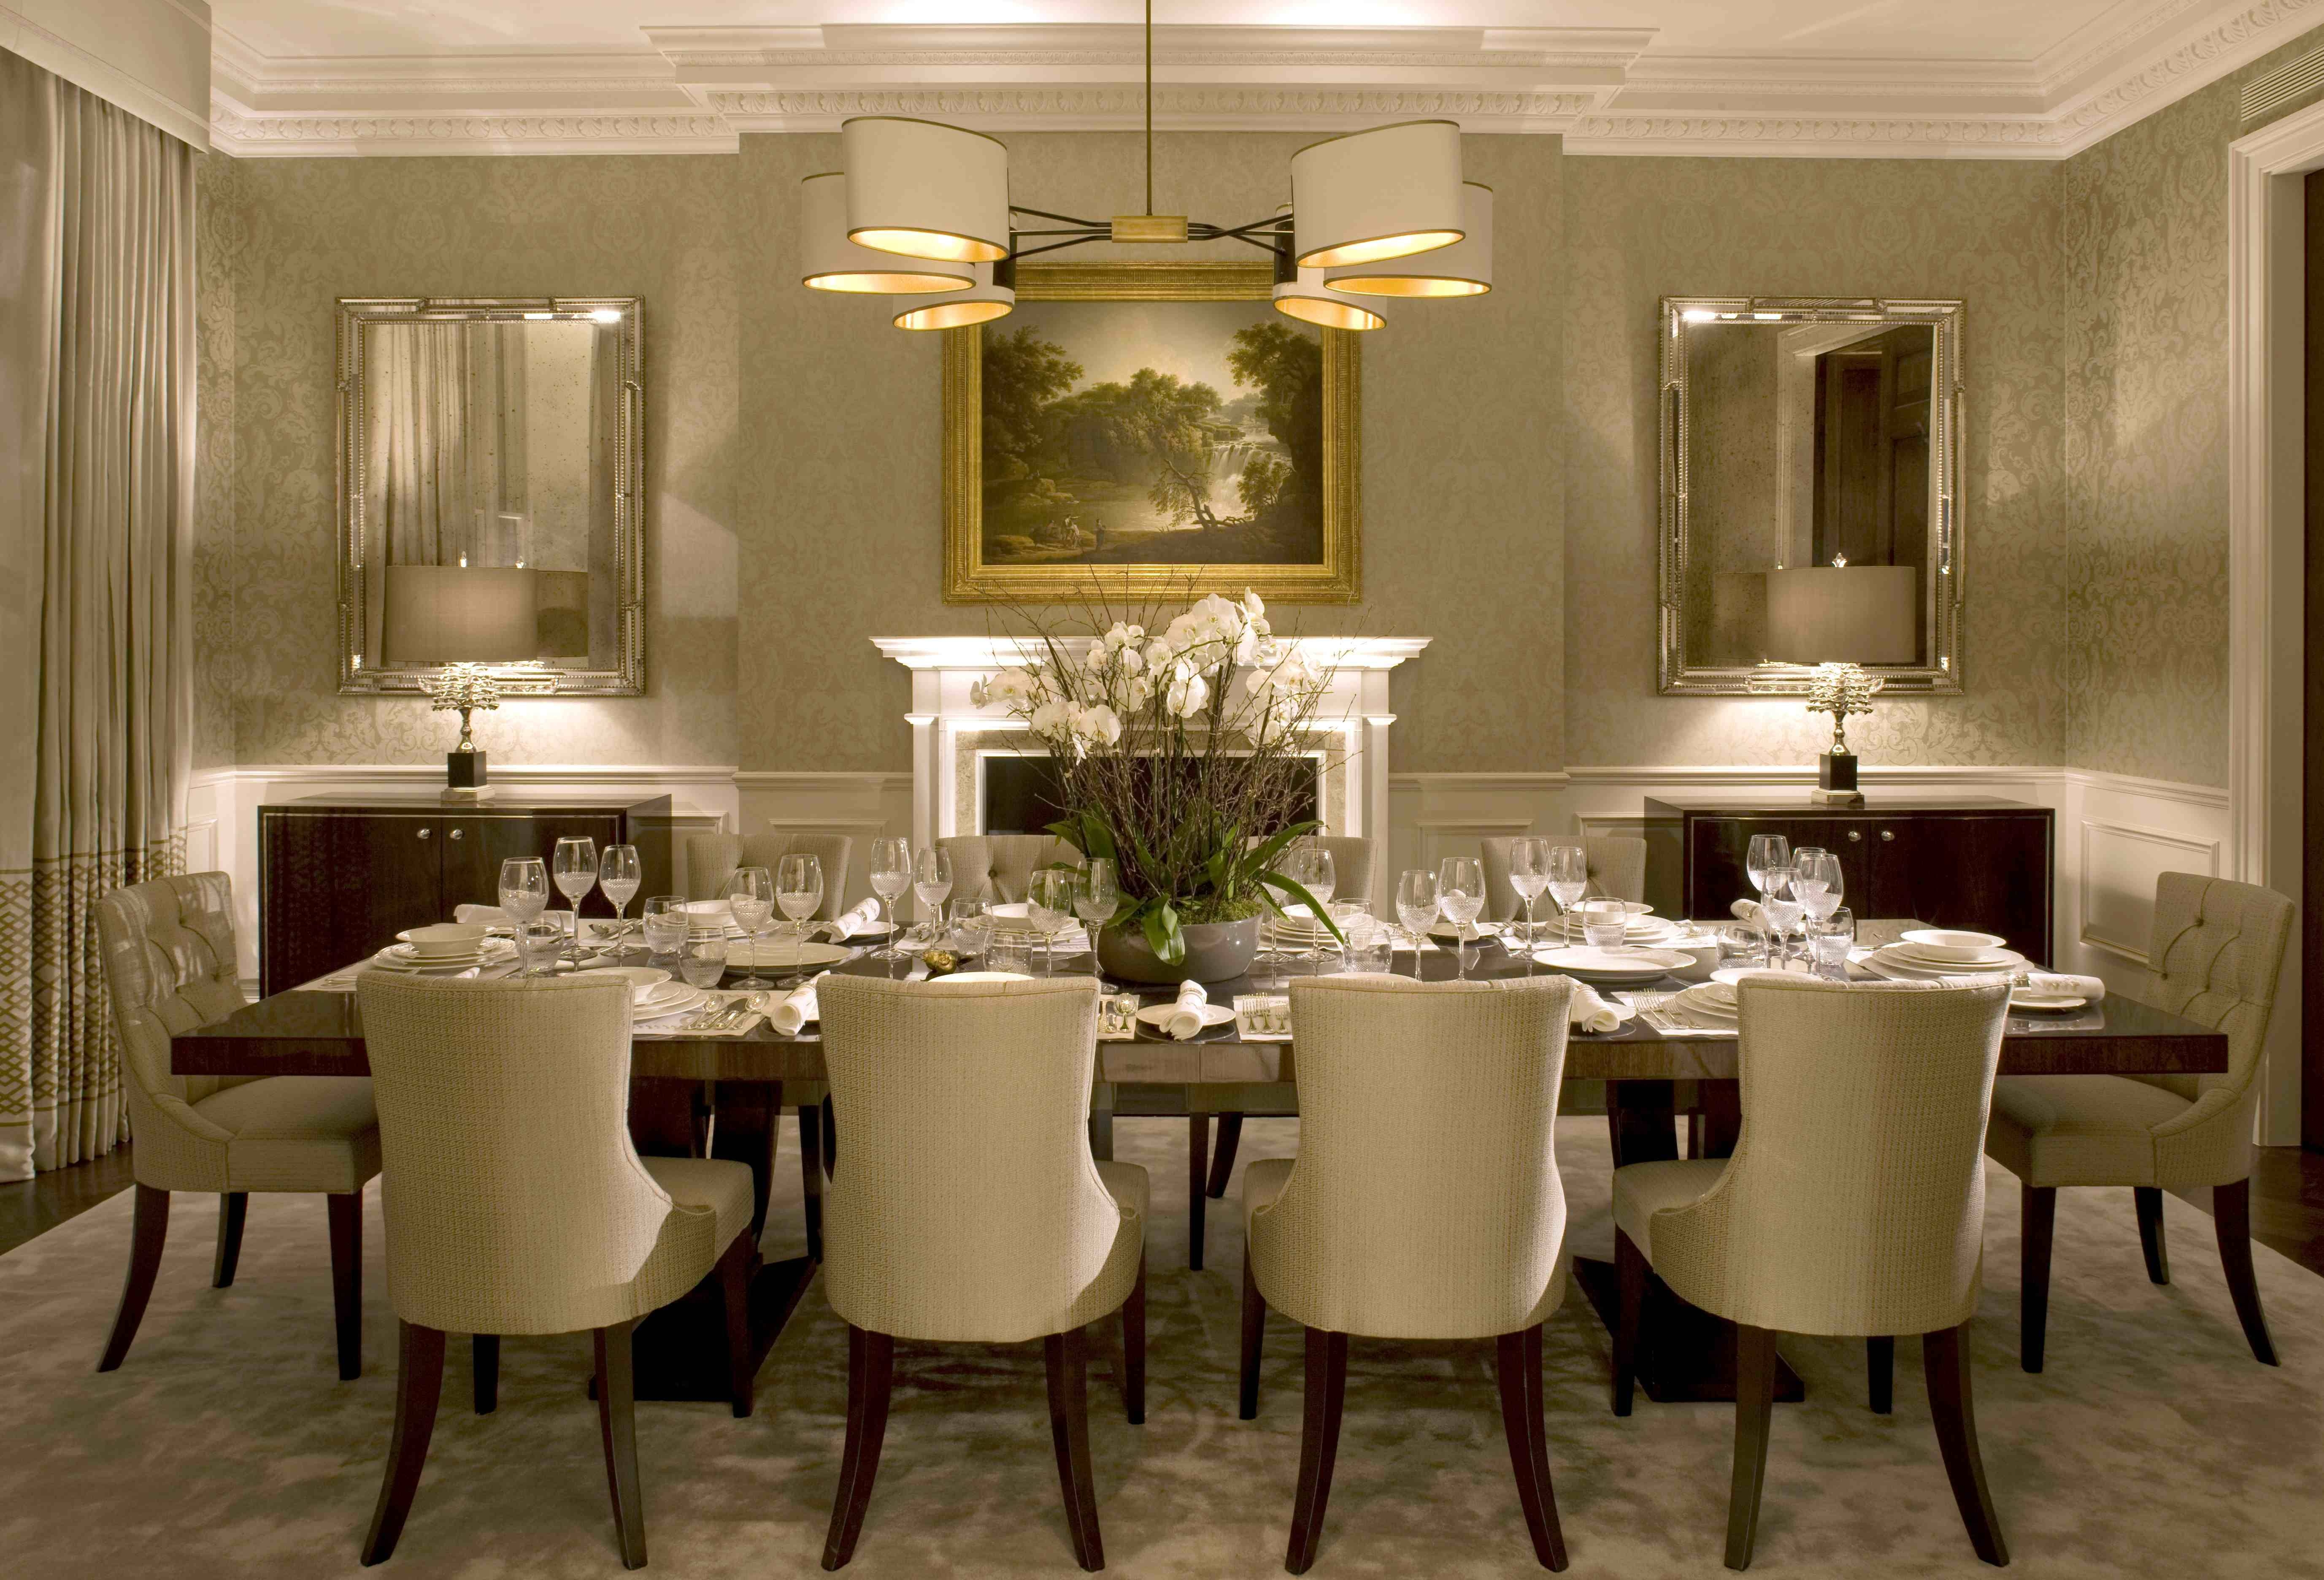 Modern Wall Art For Dining Room Gallery With Paint Ideas Paintings Regarding Most Popular Modern Wall Art For Dining Room (View 15 of 15)